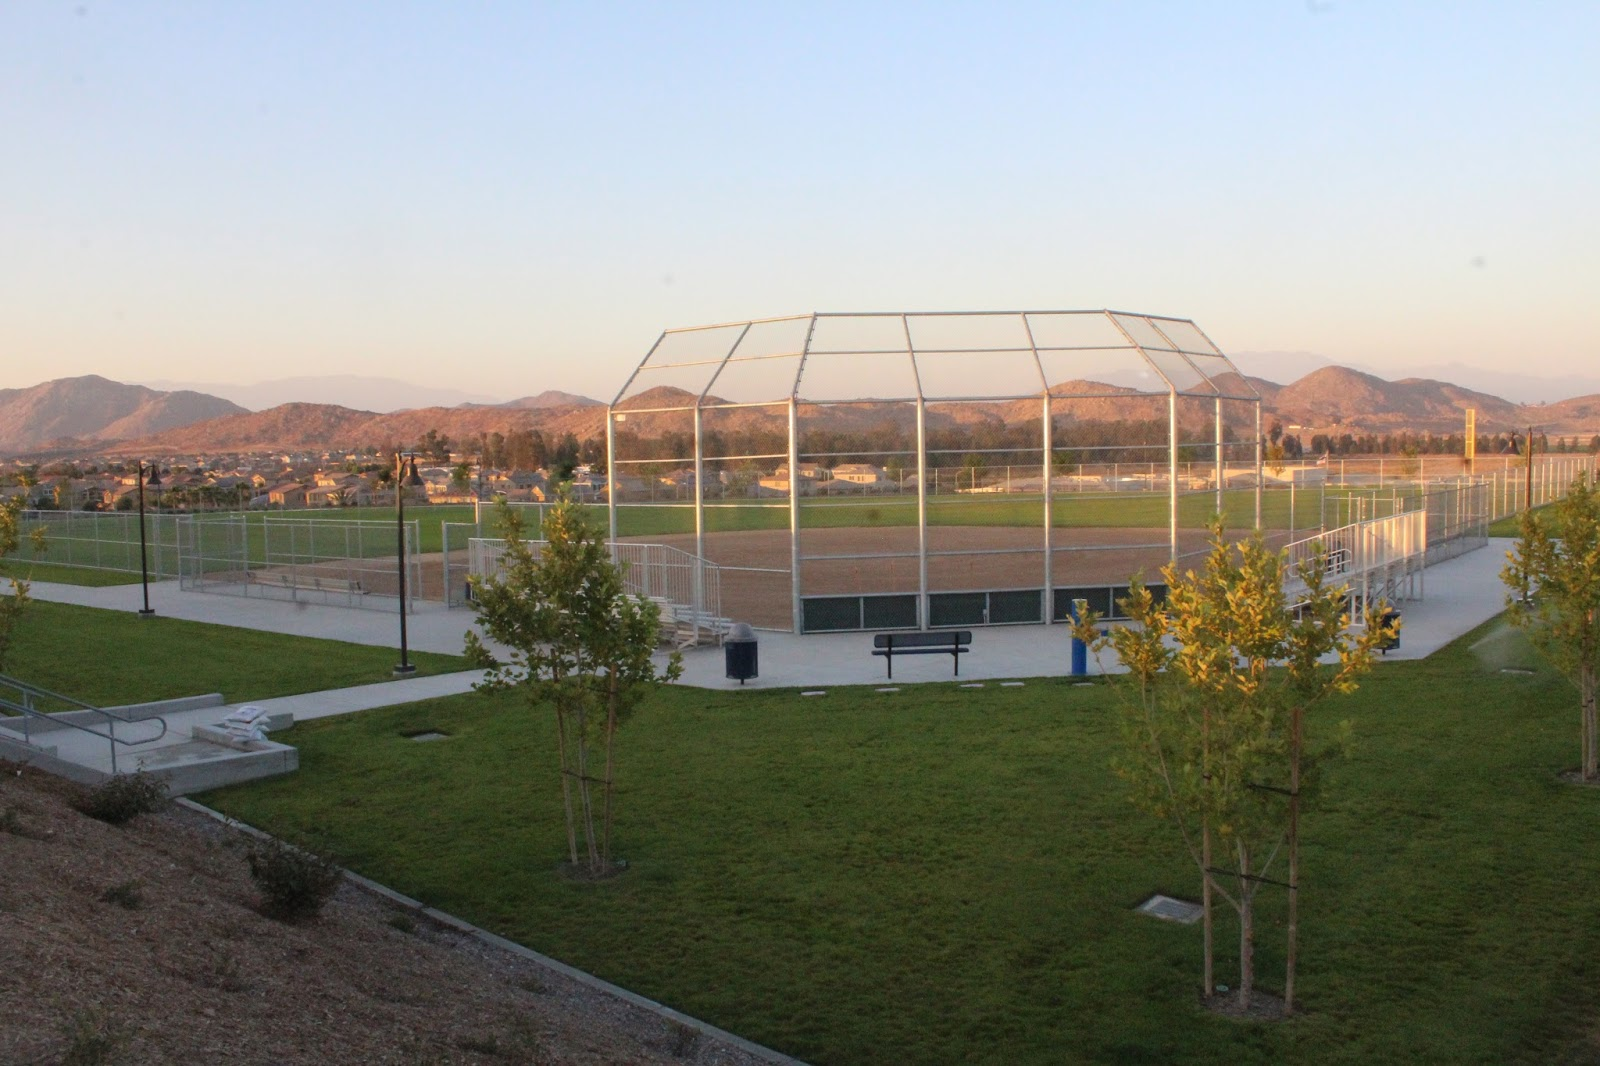 lago vista sports park on holland road to open aug 19 menifee 24 7